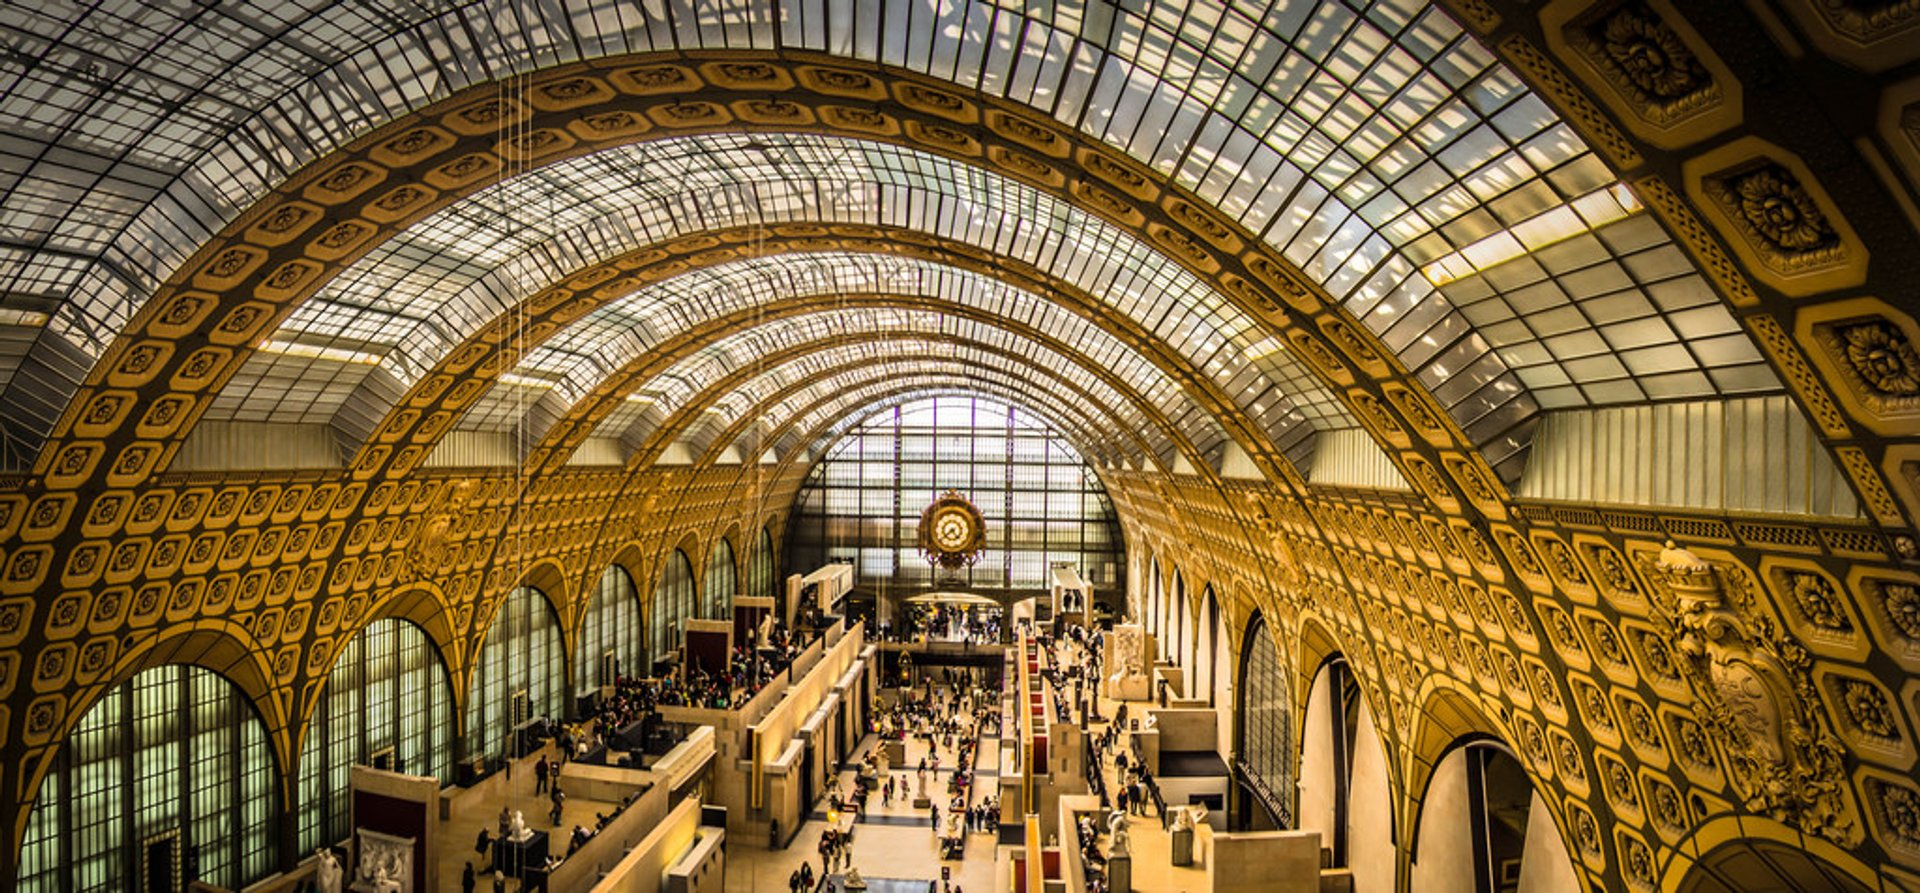 Best time for Musée d'Orsay in Paris 2019